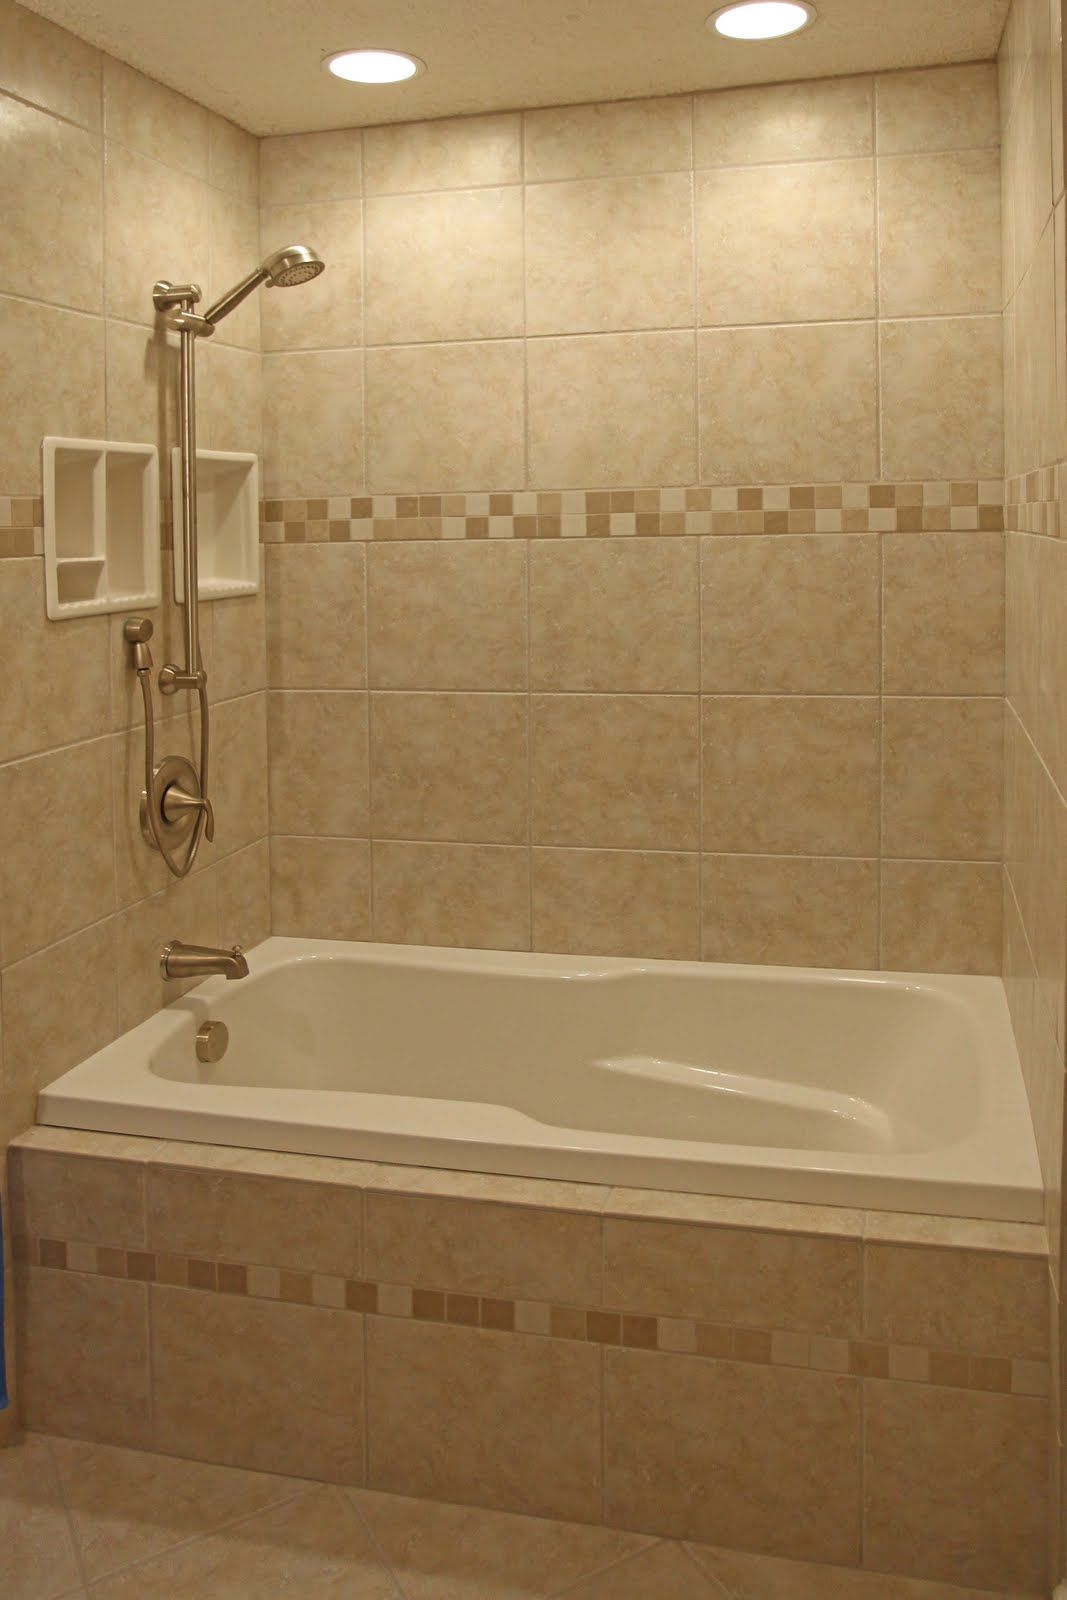 Small Bathroom Ideas With Tub And Shower shower and bath remodel | bathroom shower design ideas » ceramic